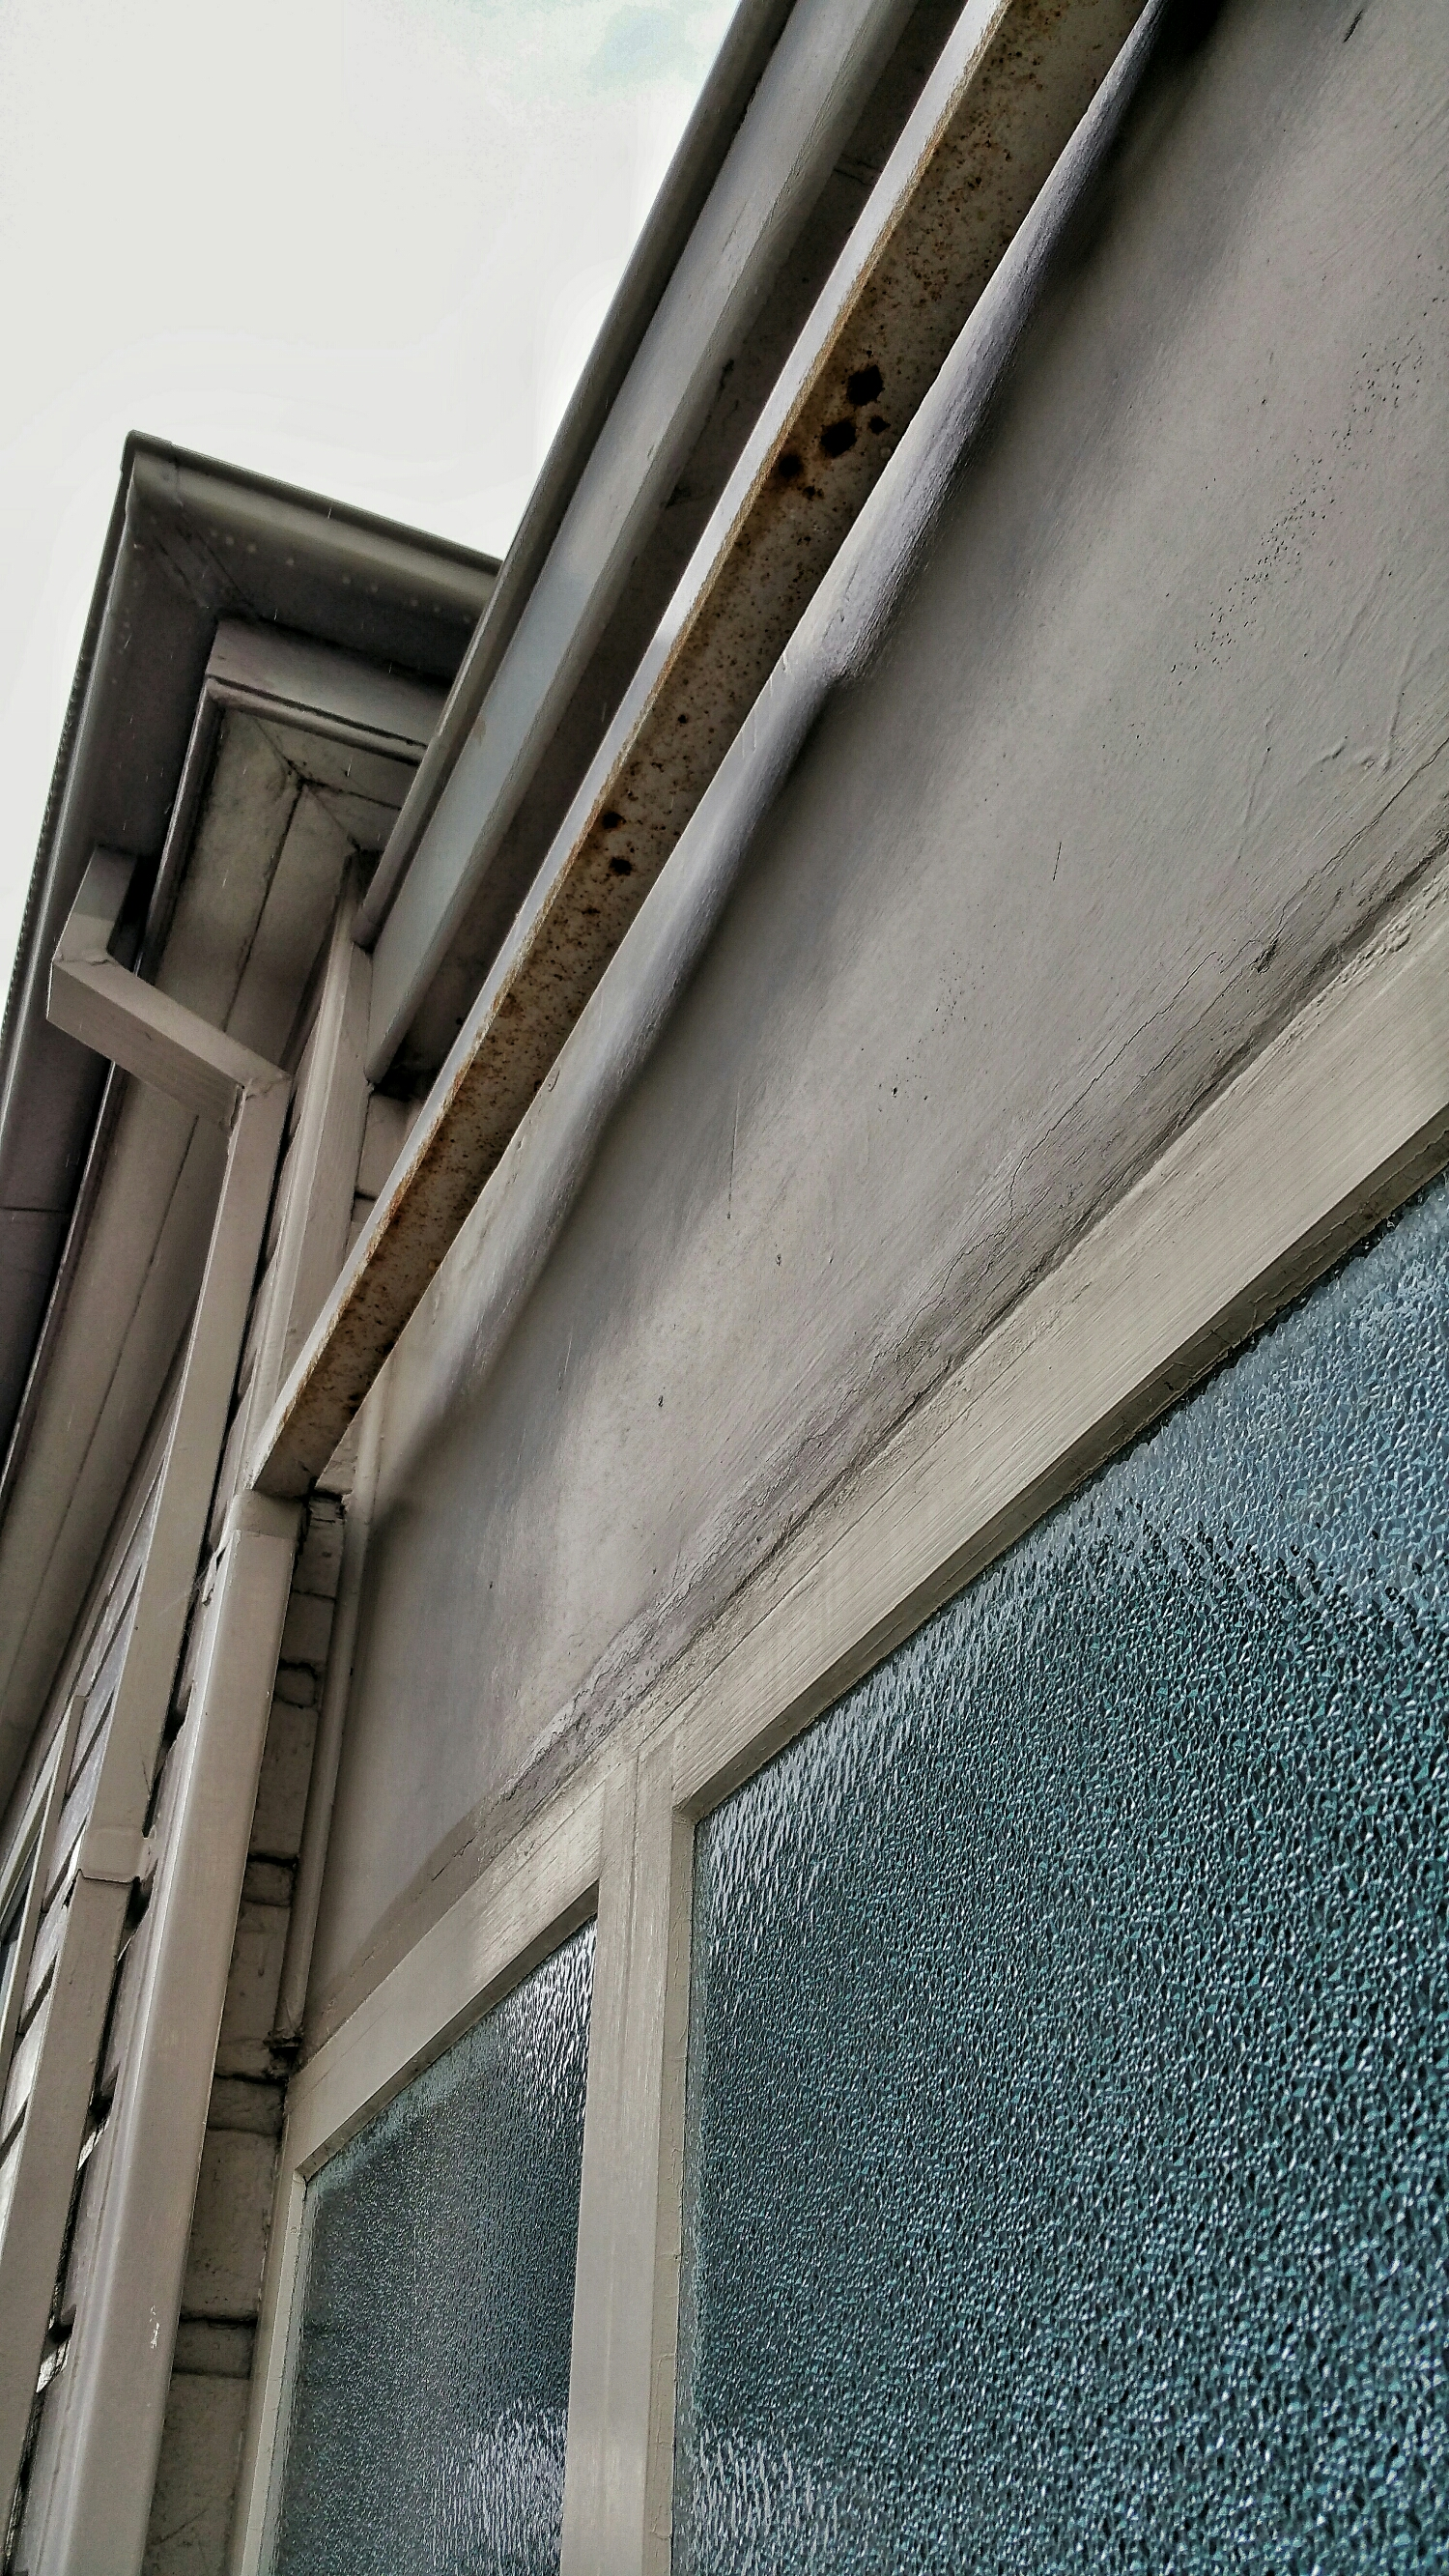 The downpipe above this window provided all the moisture required for the window below to rot.